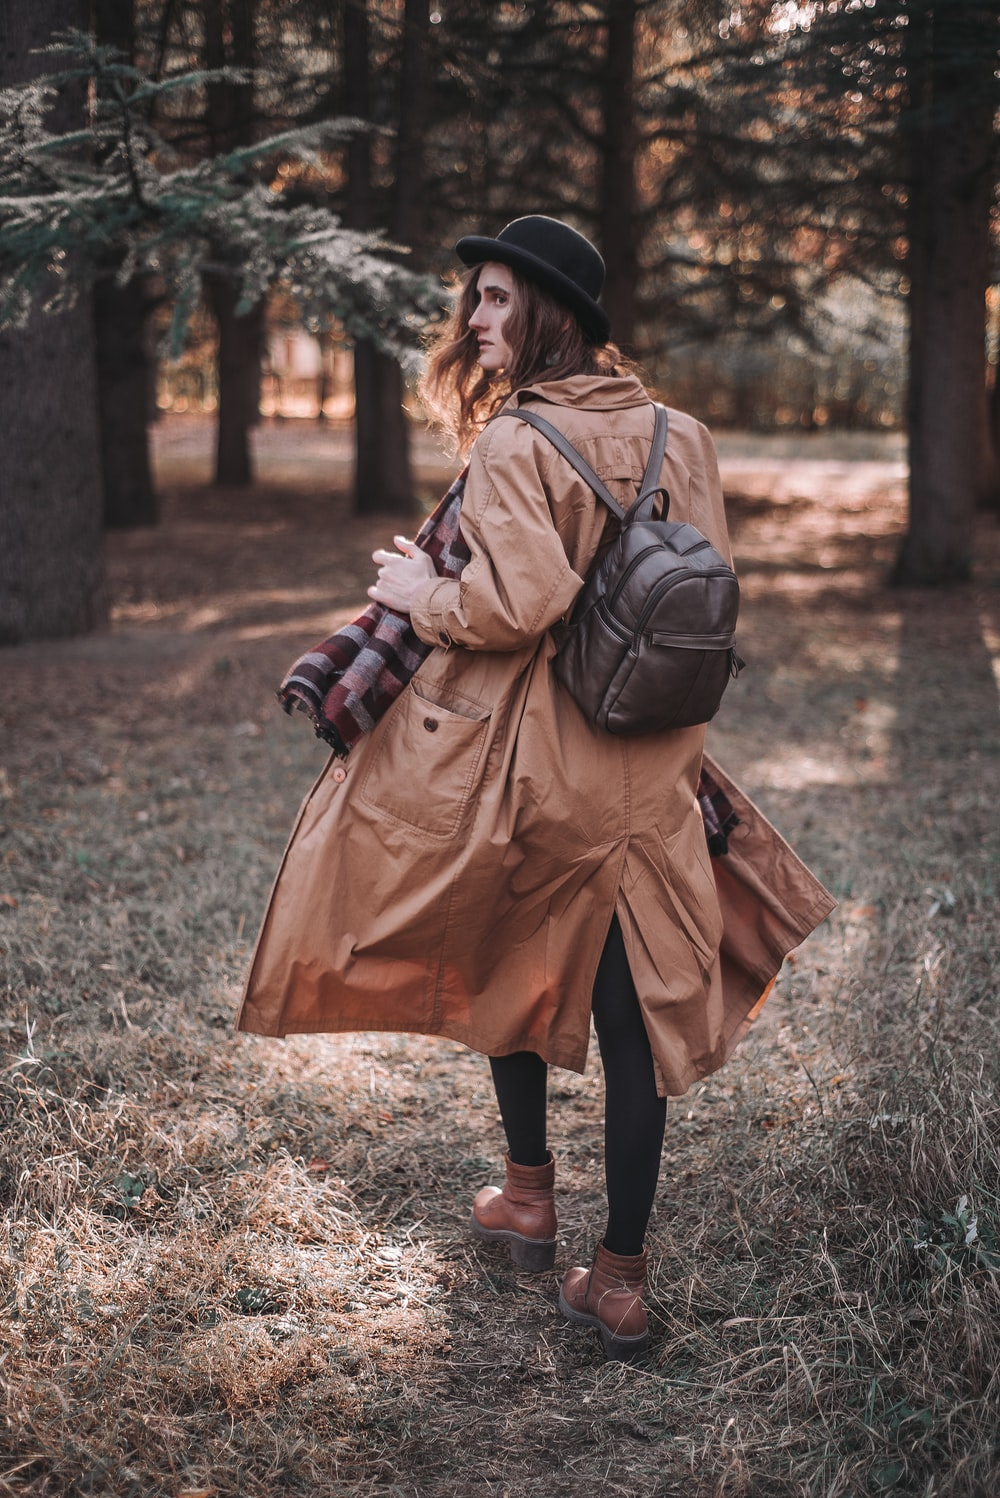 woman in brown coat and black boots walking on green grass field during daytime